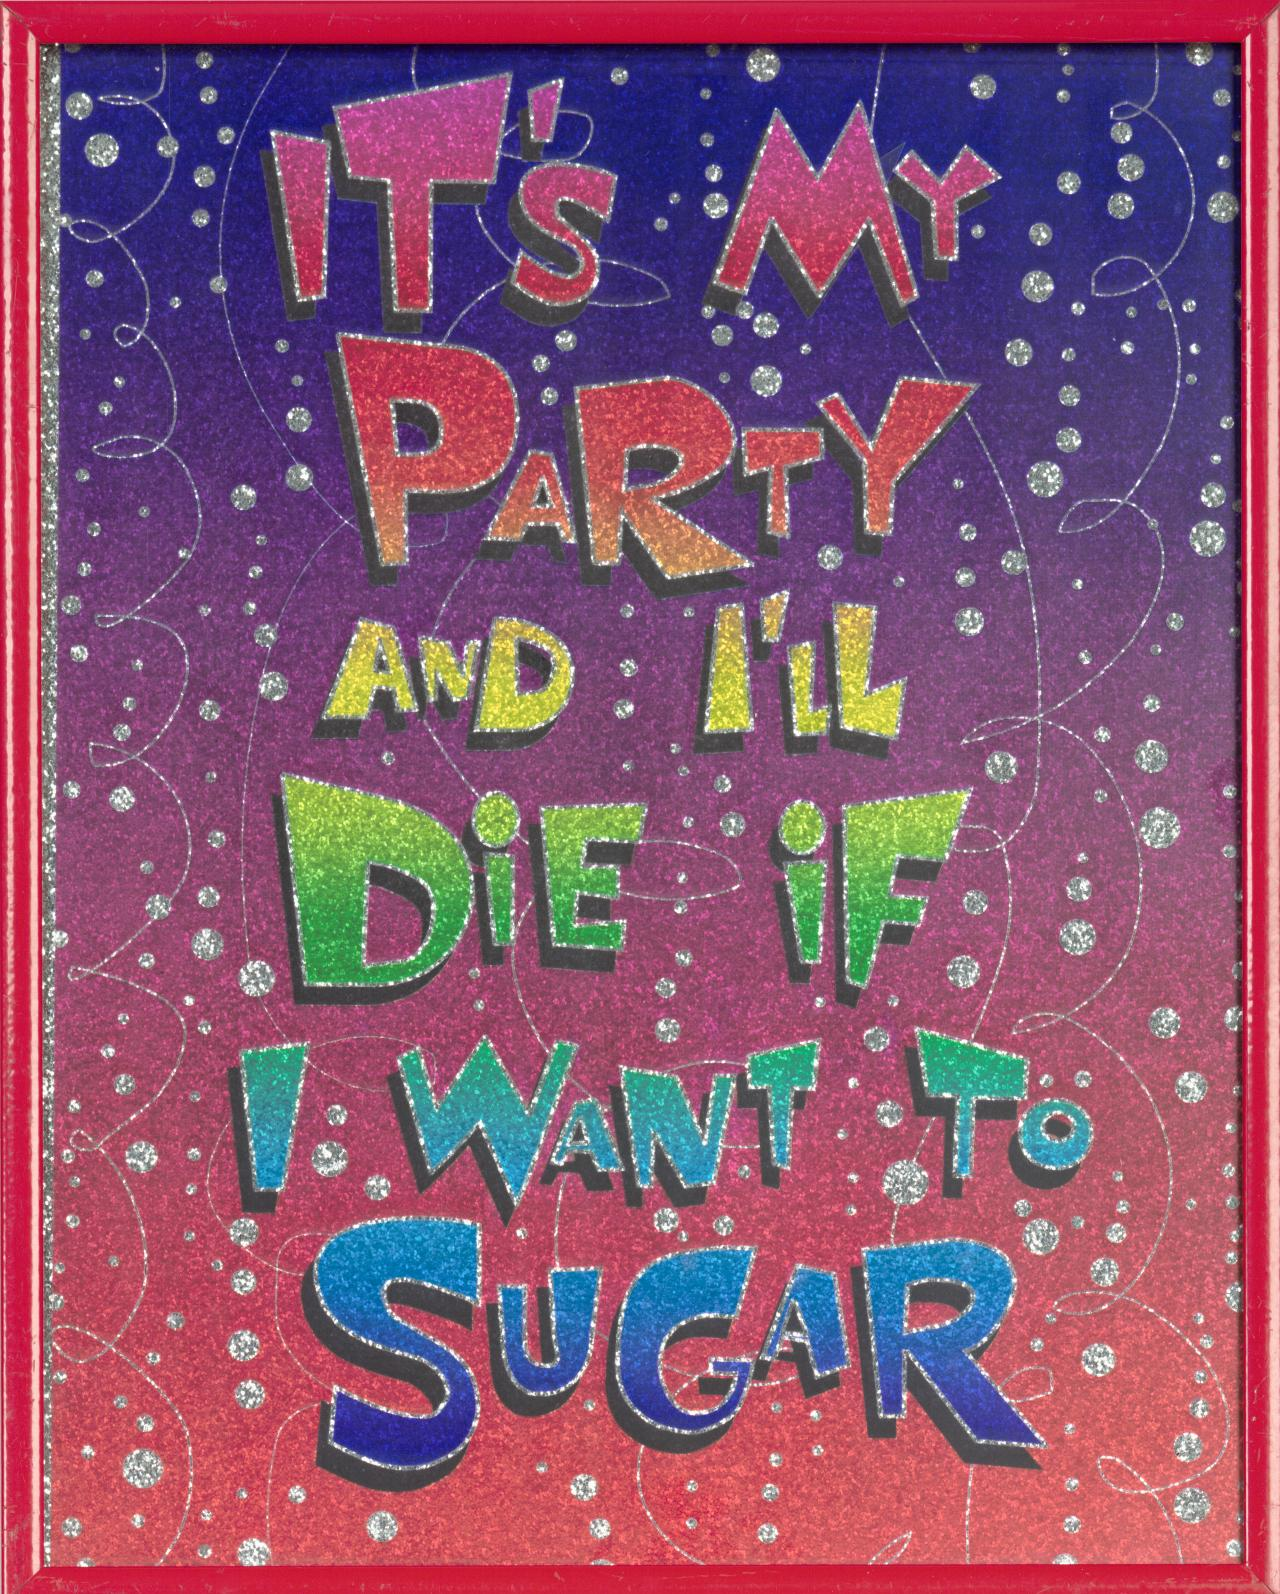 It's my party and I'll die if I want to sugar